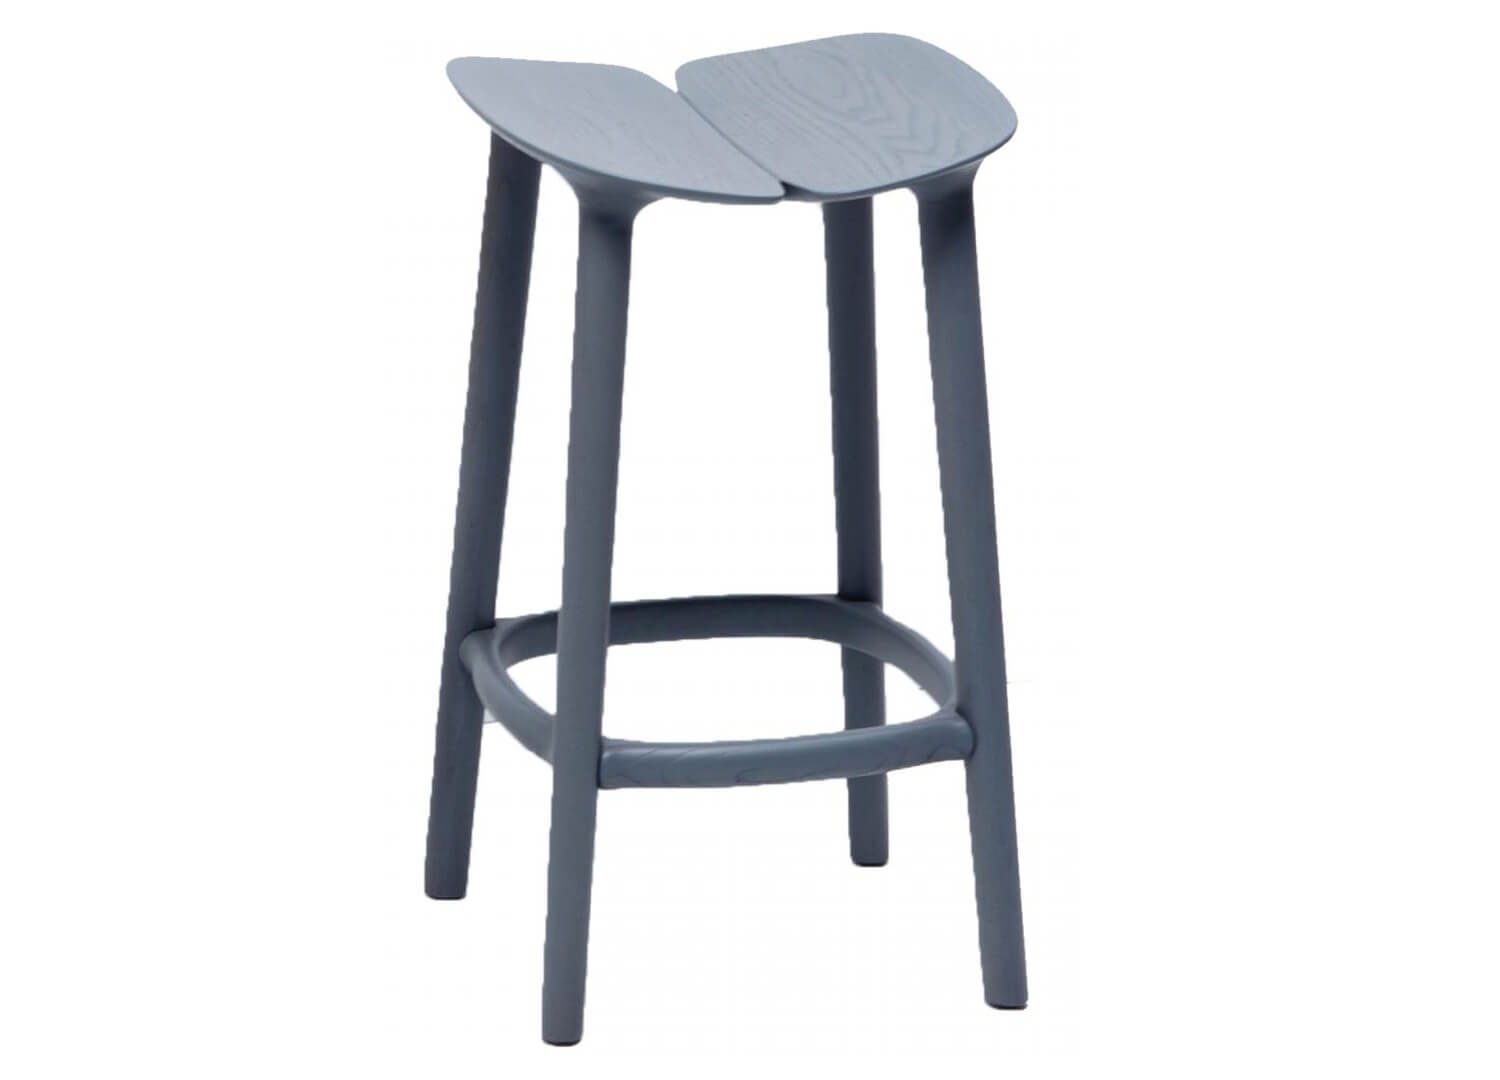 est living design directory district osso stool1